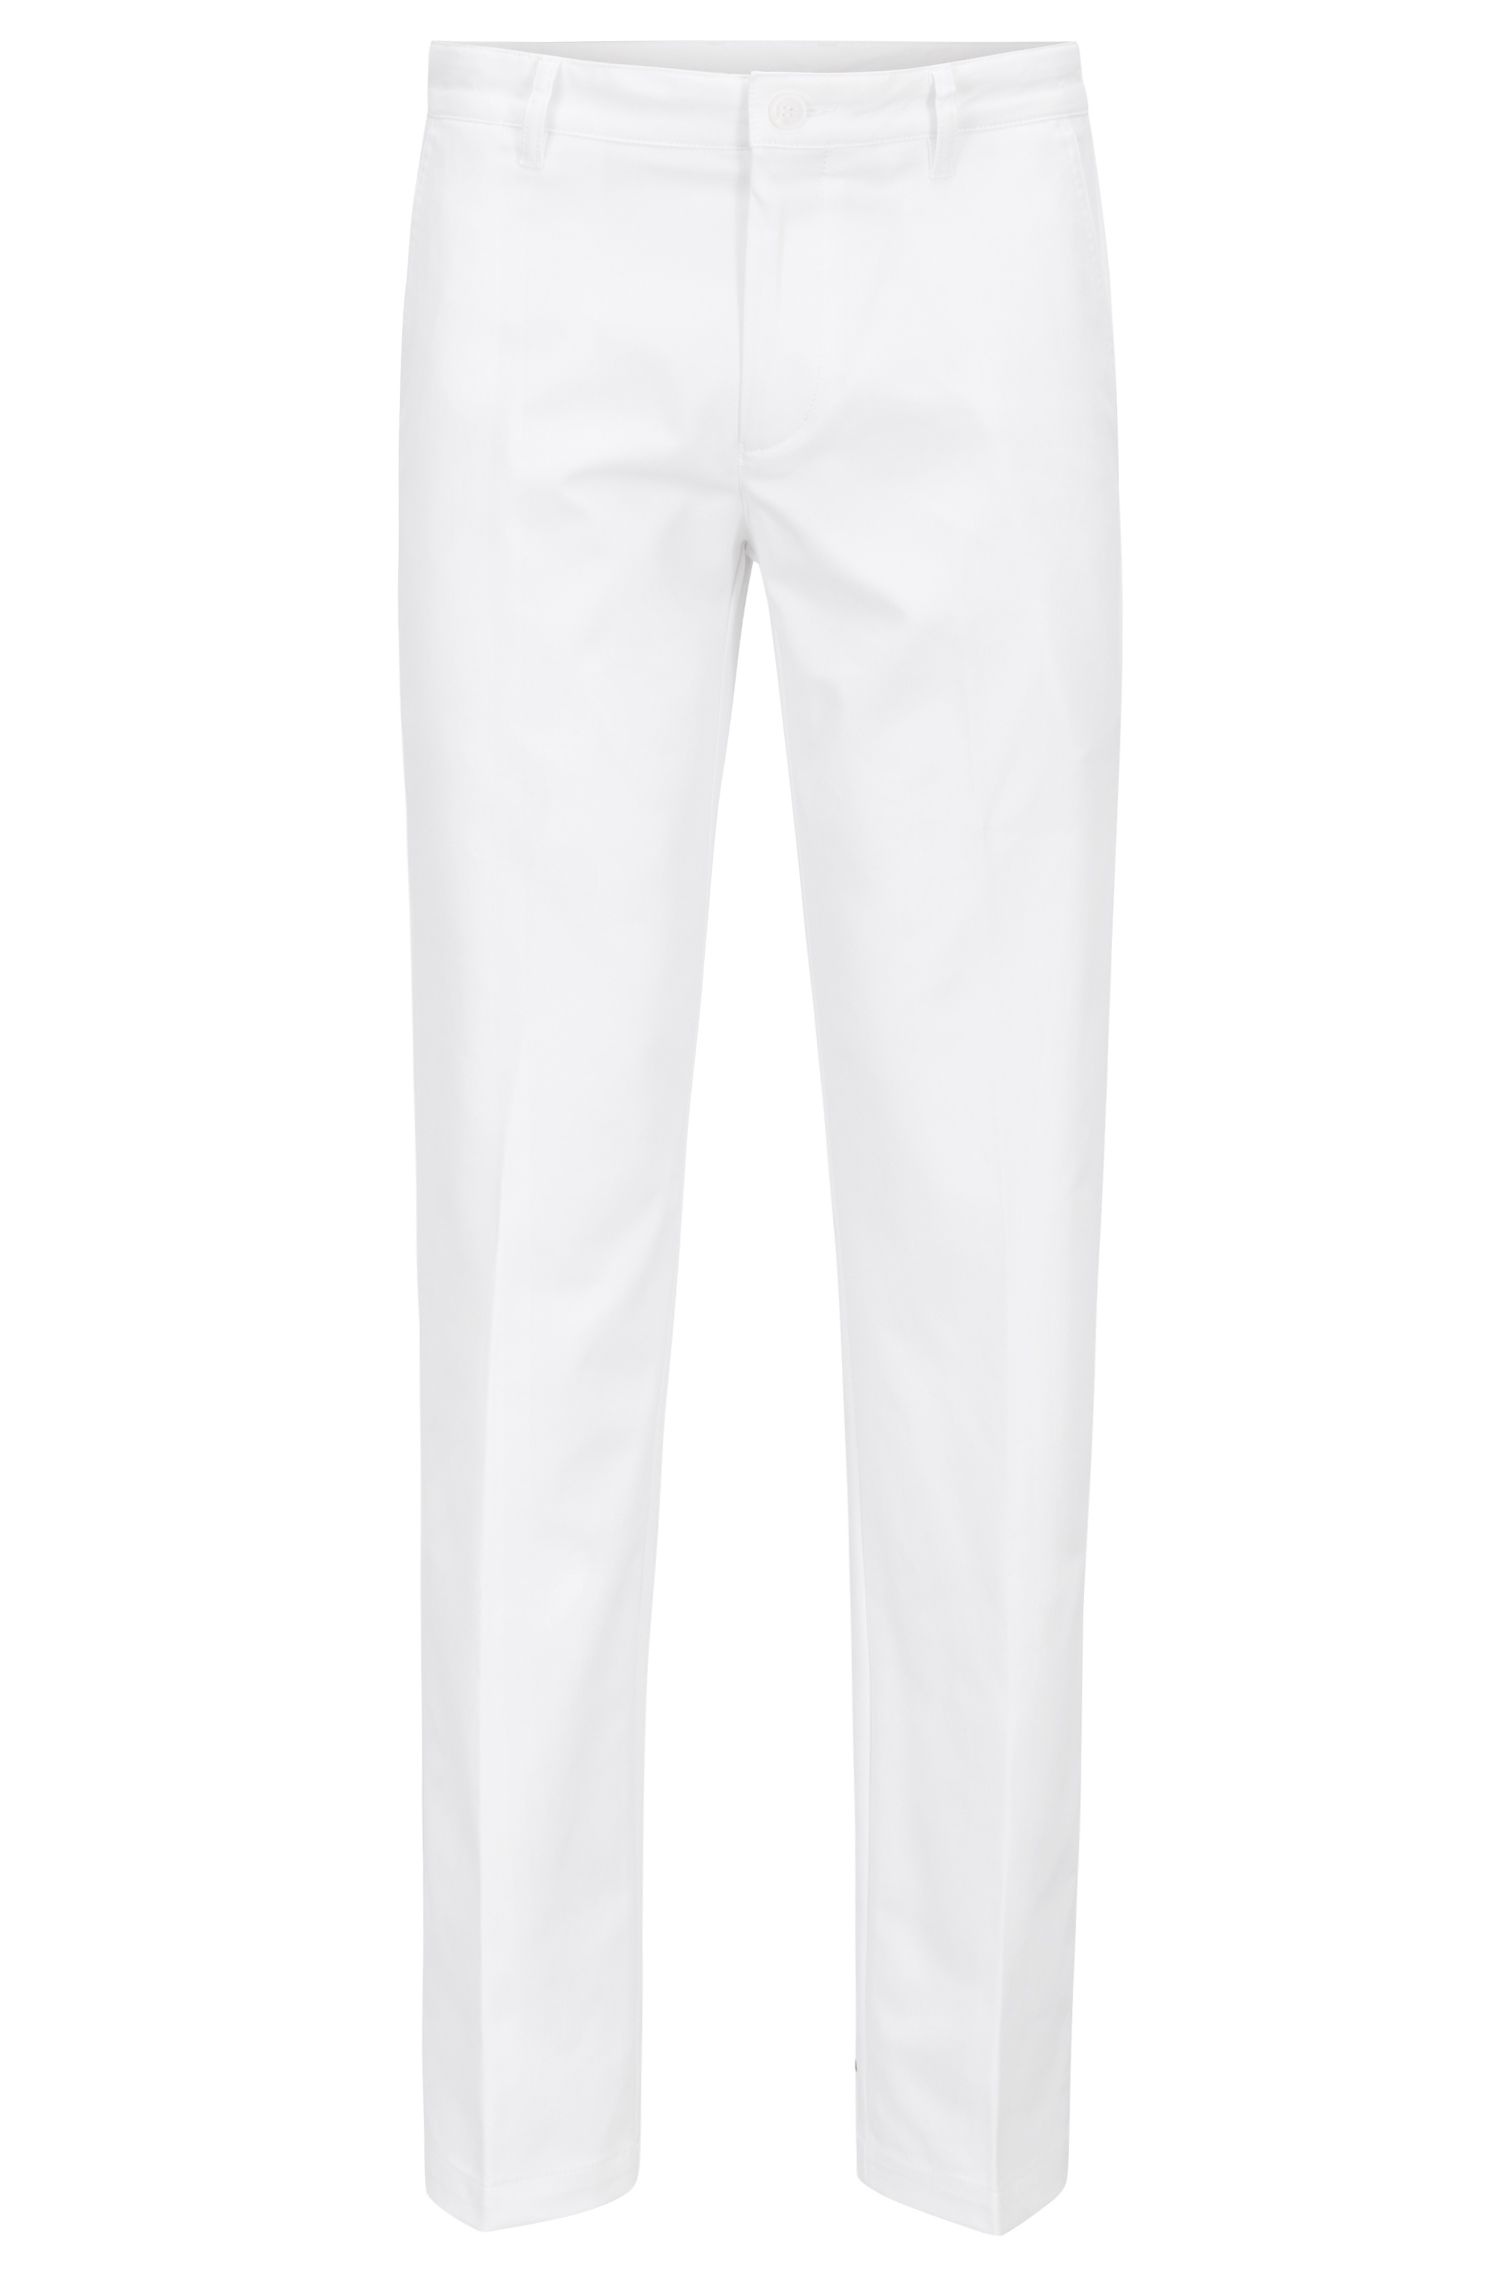 'Hakan 9' | Slim Fit, CoolMax Performance Golf Pants